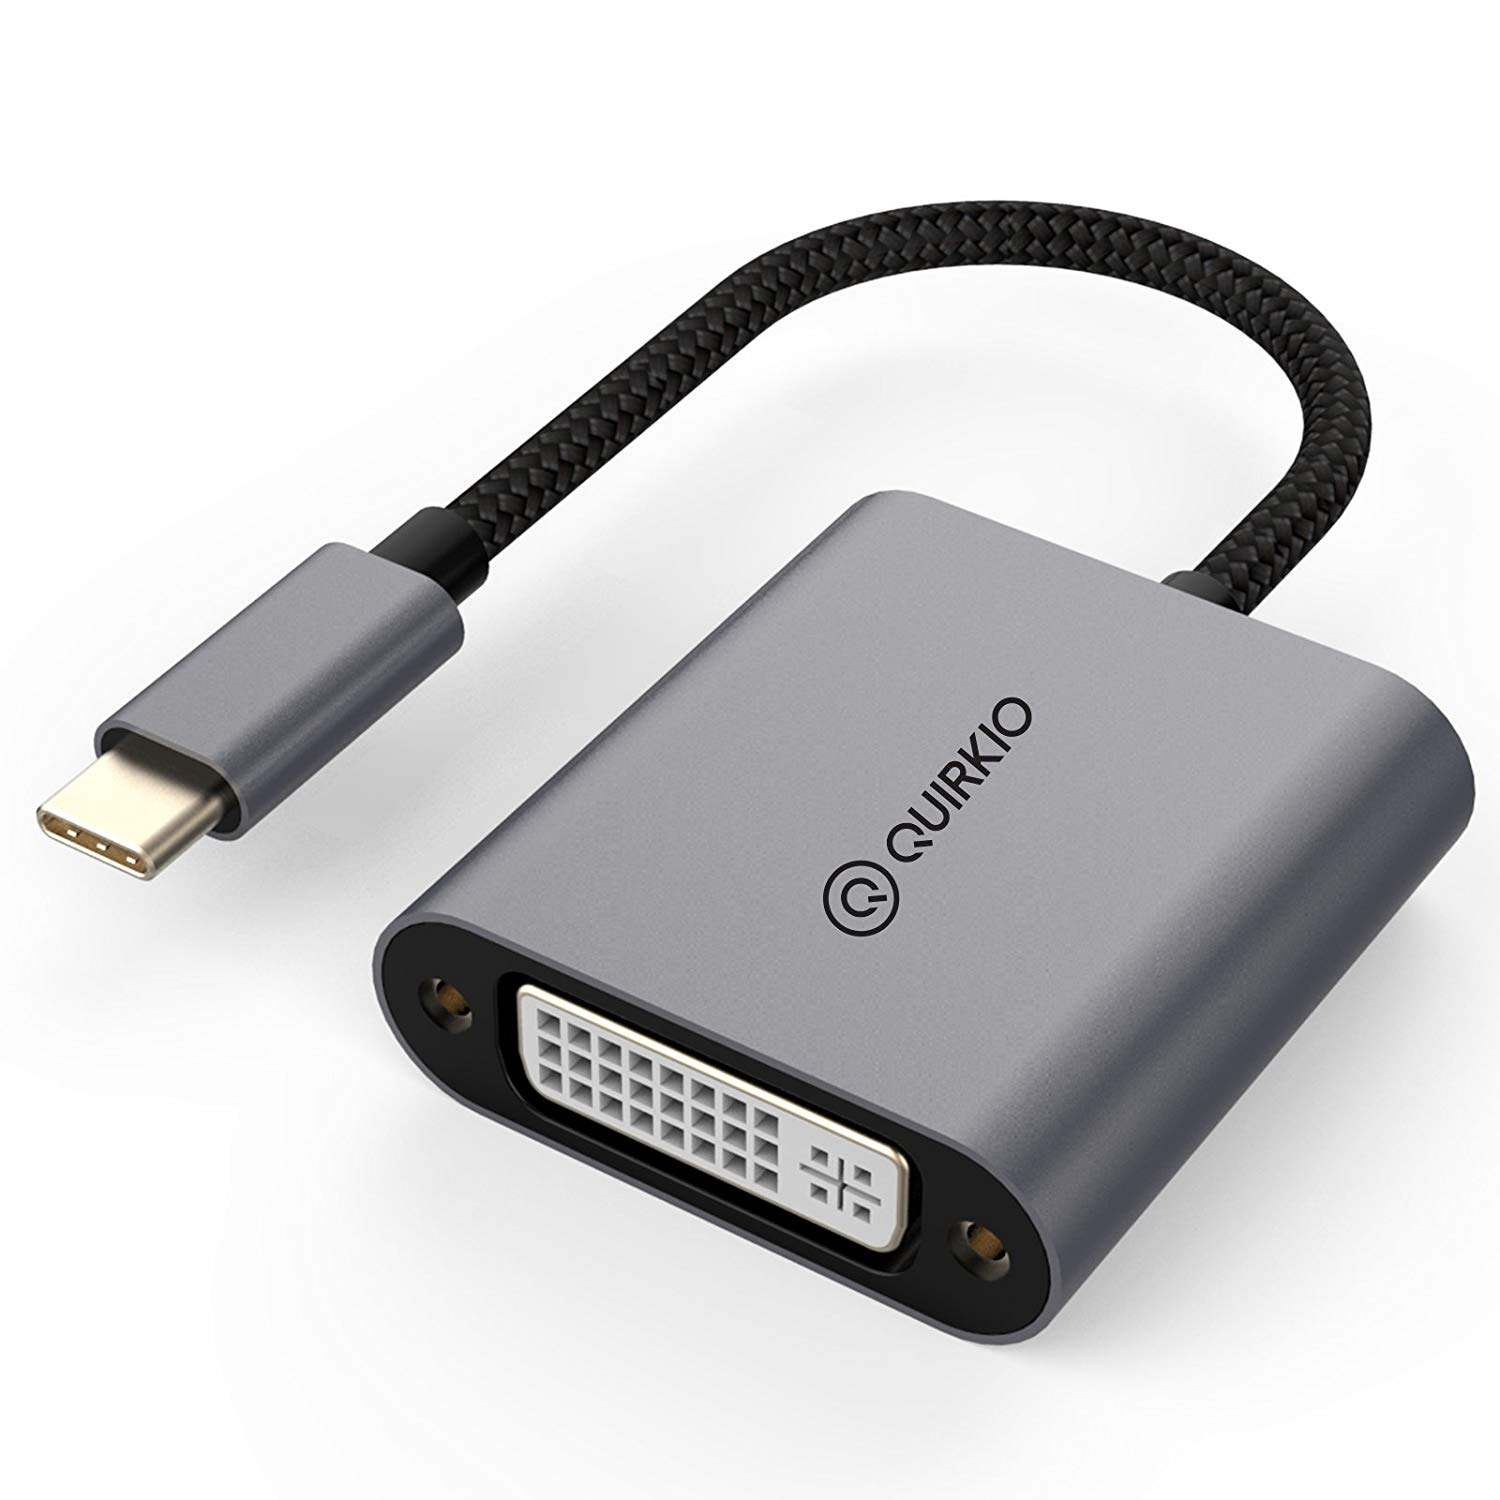 Quirkio USB C to DVI Adapter, Type C Male to DVI Female – Mirror and Stream Video, Audio and Images from USB-C Phones, Tablets, Compatible with Macbooks and Chromebooks to External Monitor Screens